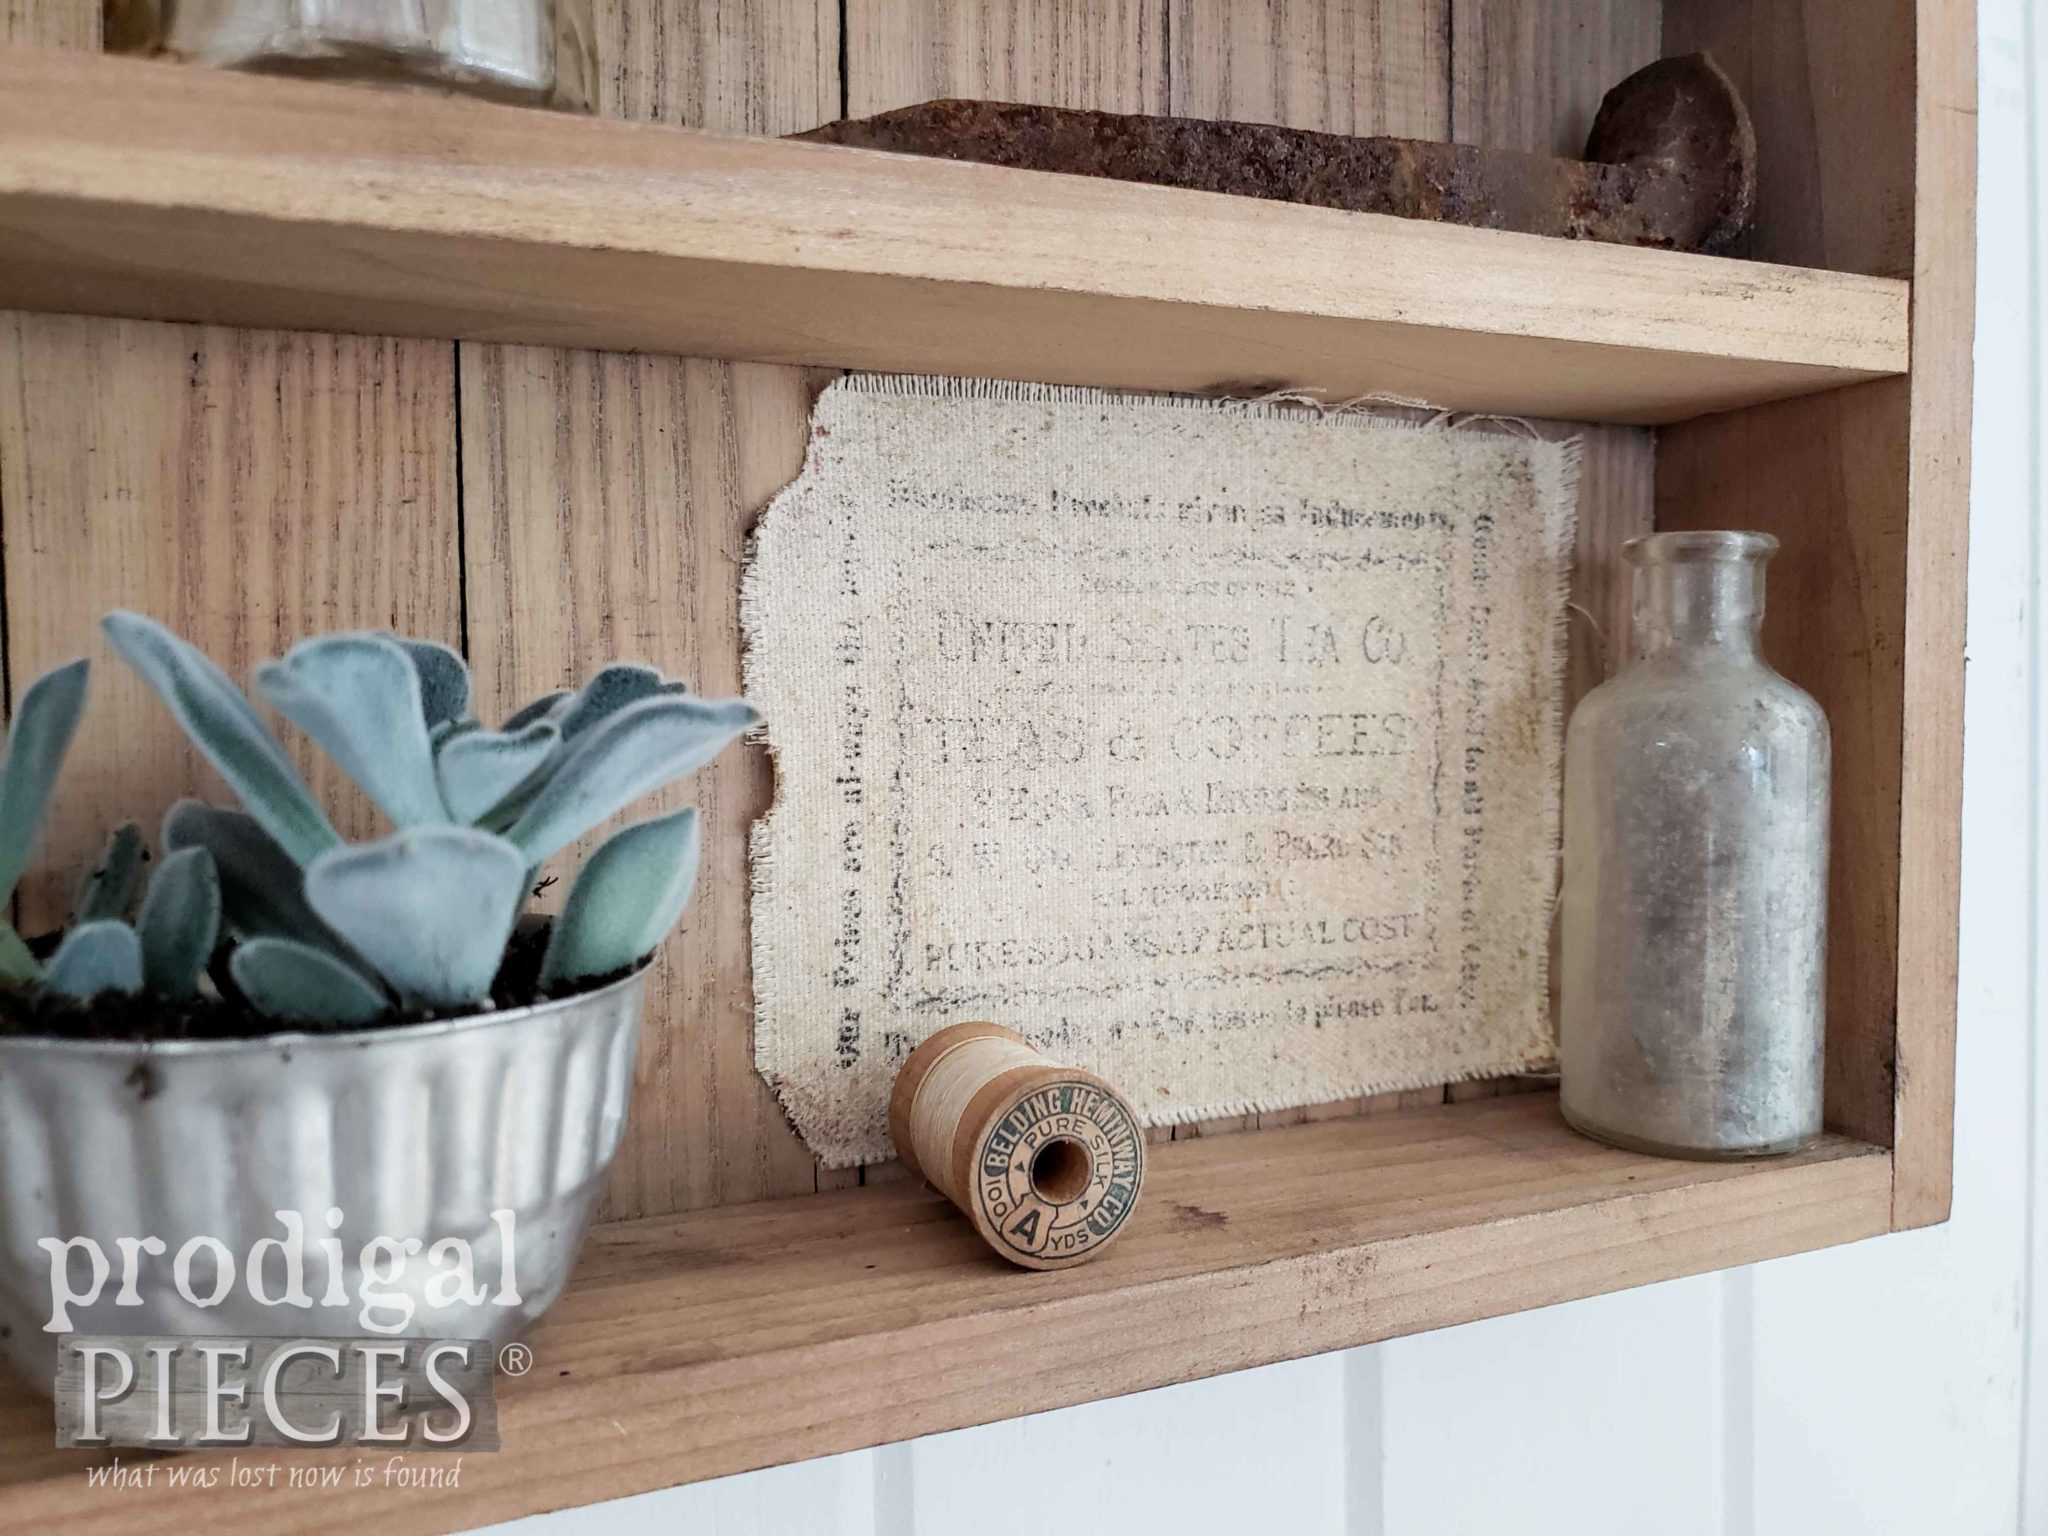 Vintage Apothecary Label added to Farmhouse Cabinet by Larissa of Prodigal Pieces | prodigalpieces.com #prodigalpieces #farmhouse #diy #home #homedecor